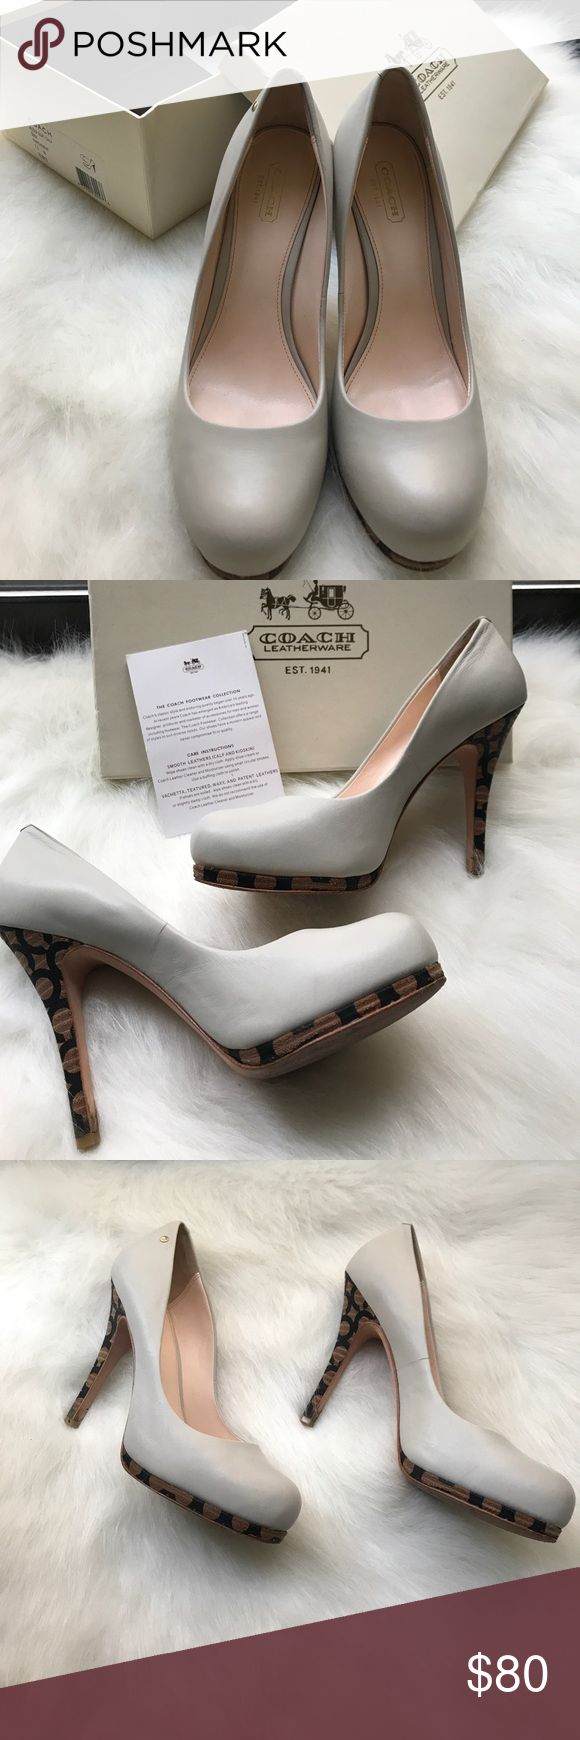 """Coach Off White Leather Signature Cork Heel Pumps Preowned. Size 7.5. The name of these lovelies is Alexa. It's a beautiful off white leather pump with Coach Signature C Embossed in a cork Heel. Heel height measures at 3.5"""" and are very comfortable. There are some signs of wear. The soles as shown in pics. Also the back of the shoe where the leather and cork meets there is a scratch on both pumps. They are real leather so they is also some natural cracking. Can provide more pics if needed…"""